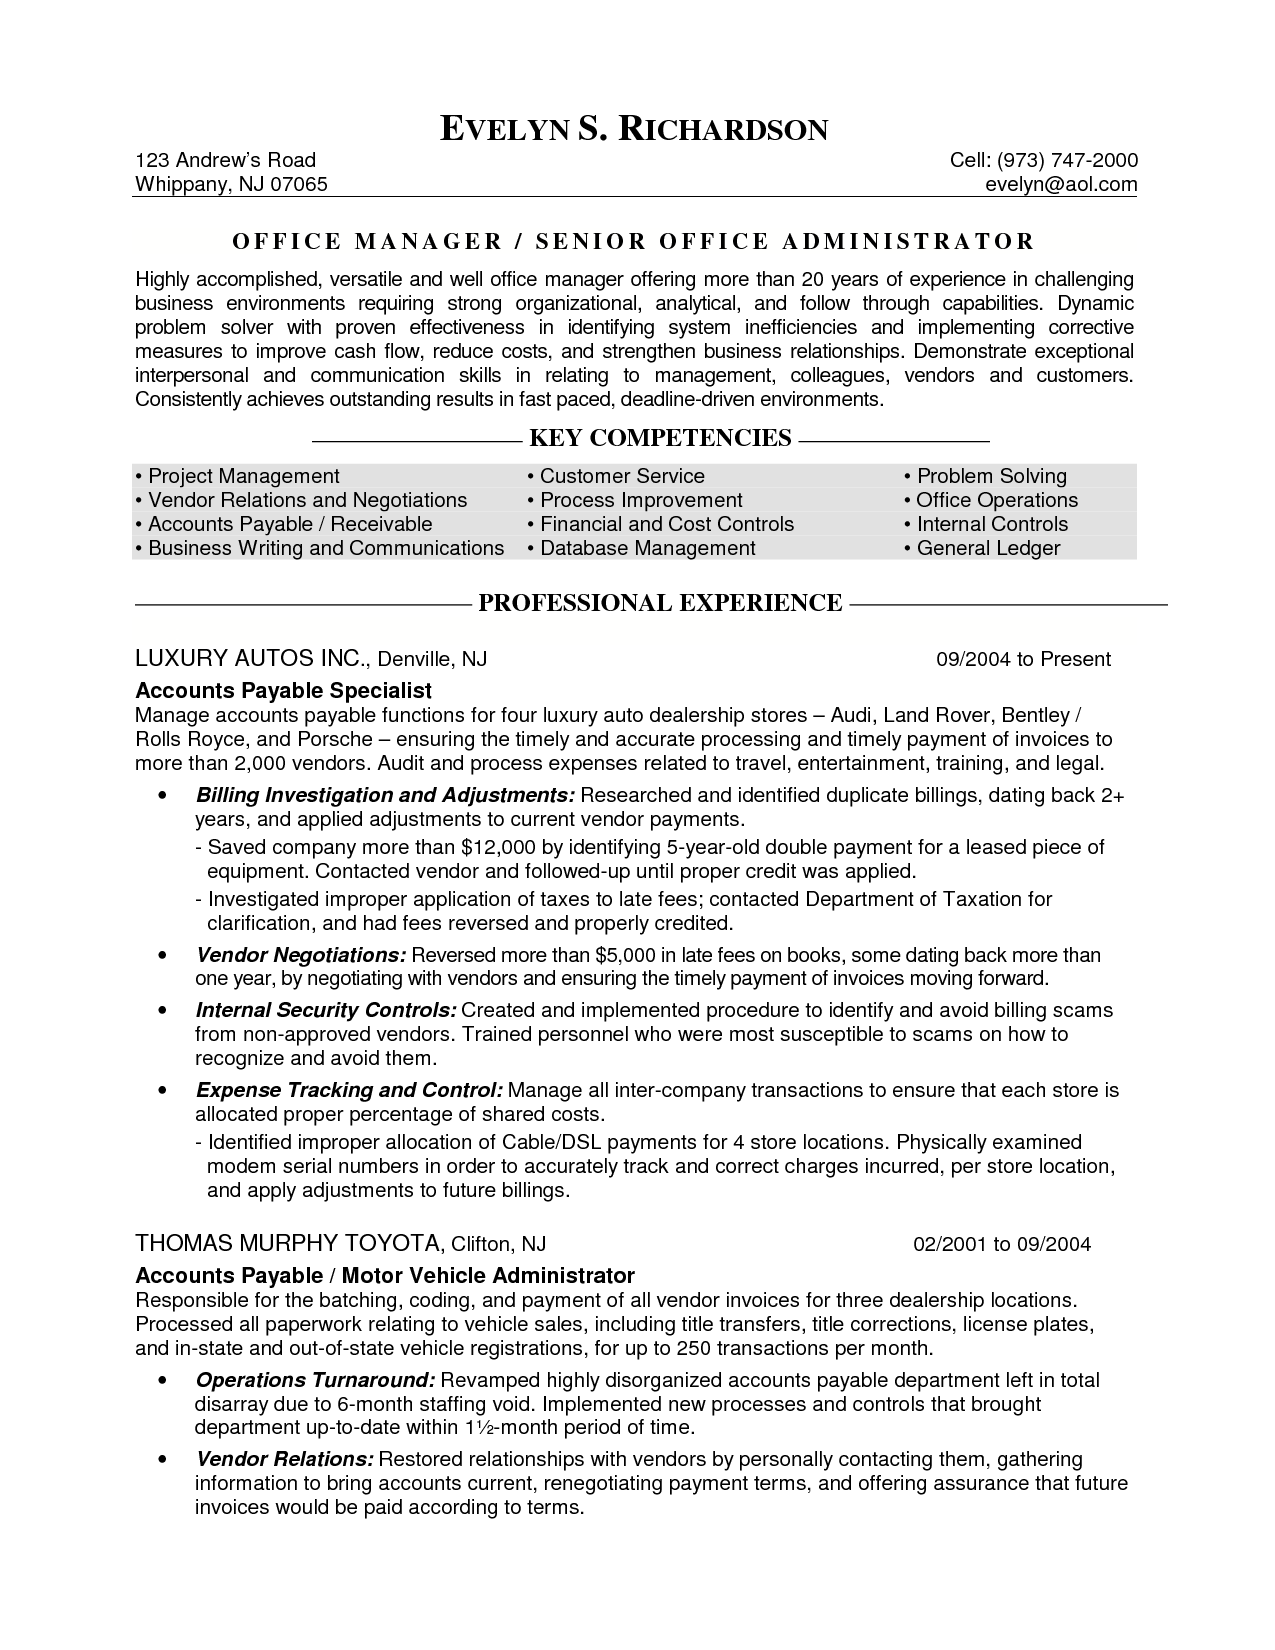 Resume Objective For Office Manager